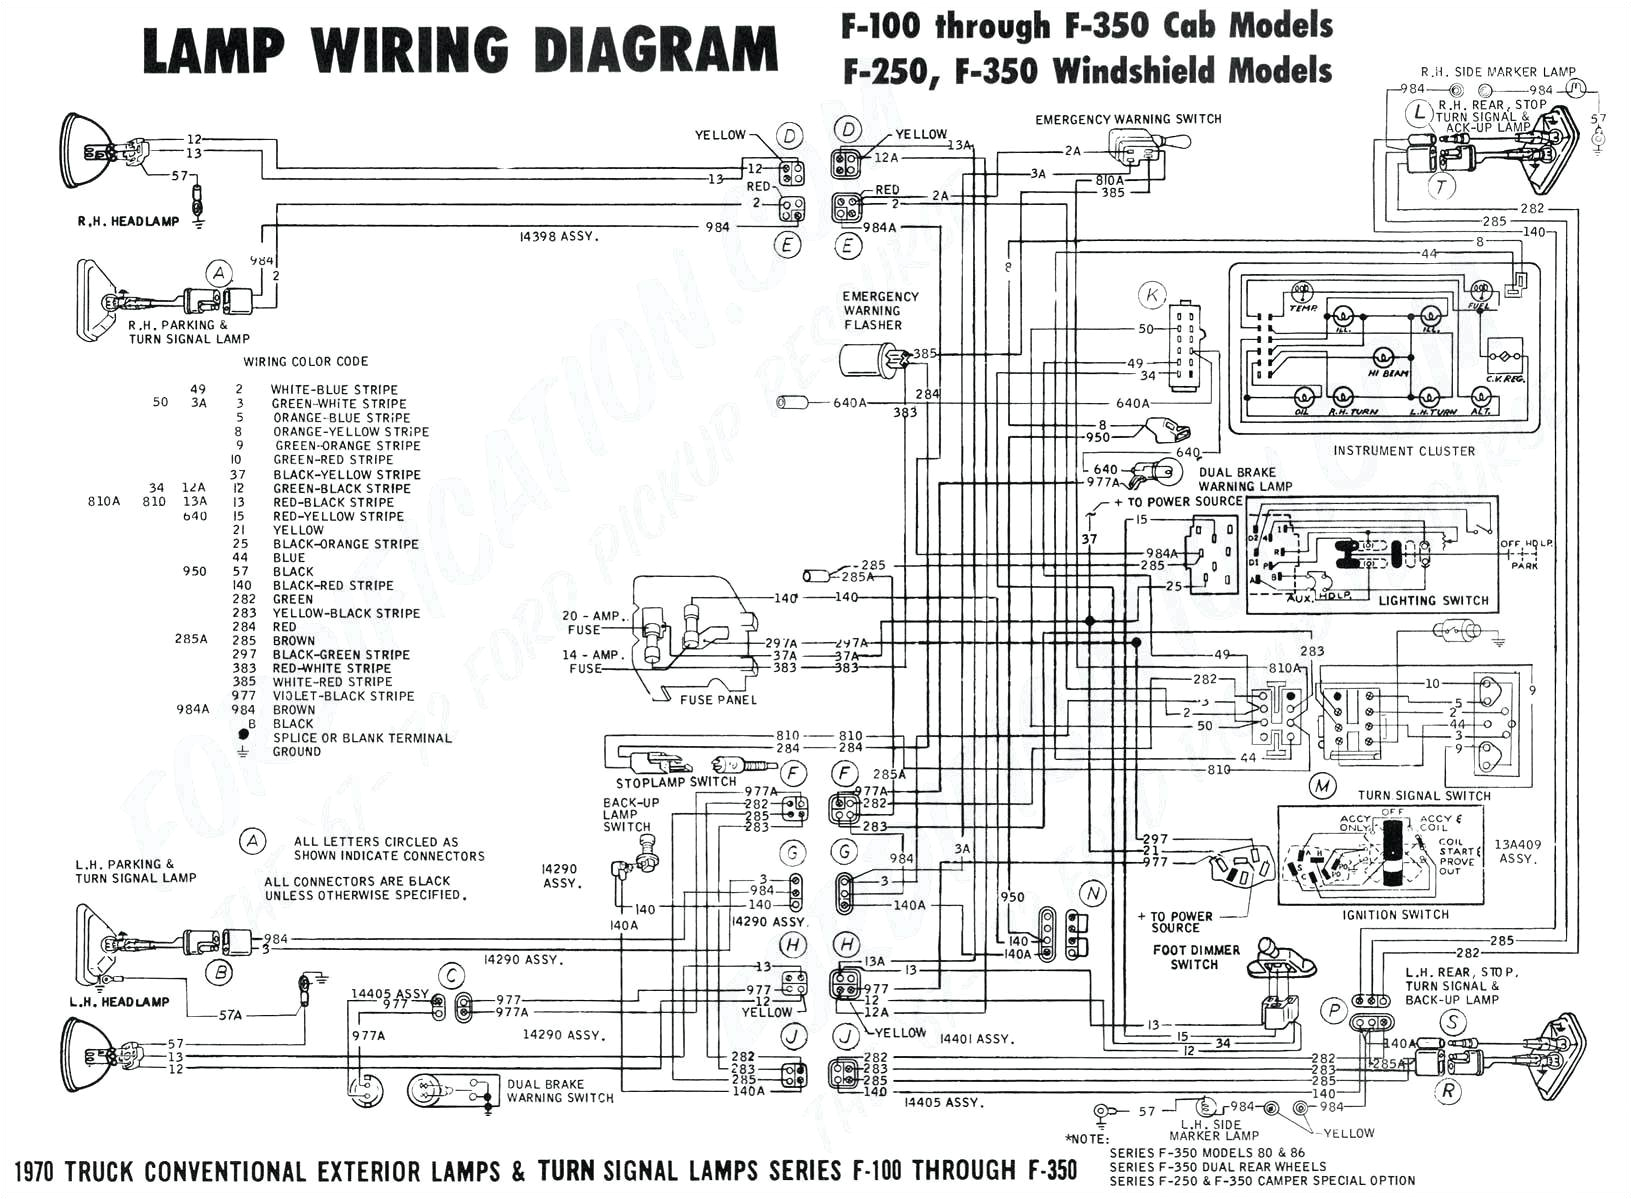 1989 cadillac wiring harness color codes in stereo wiring diagram 1989 cadillac wiring harness color codes in stereo